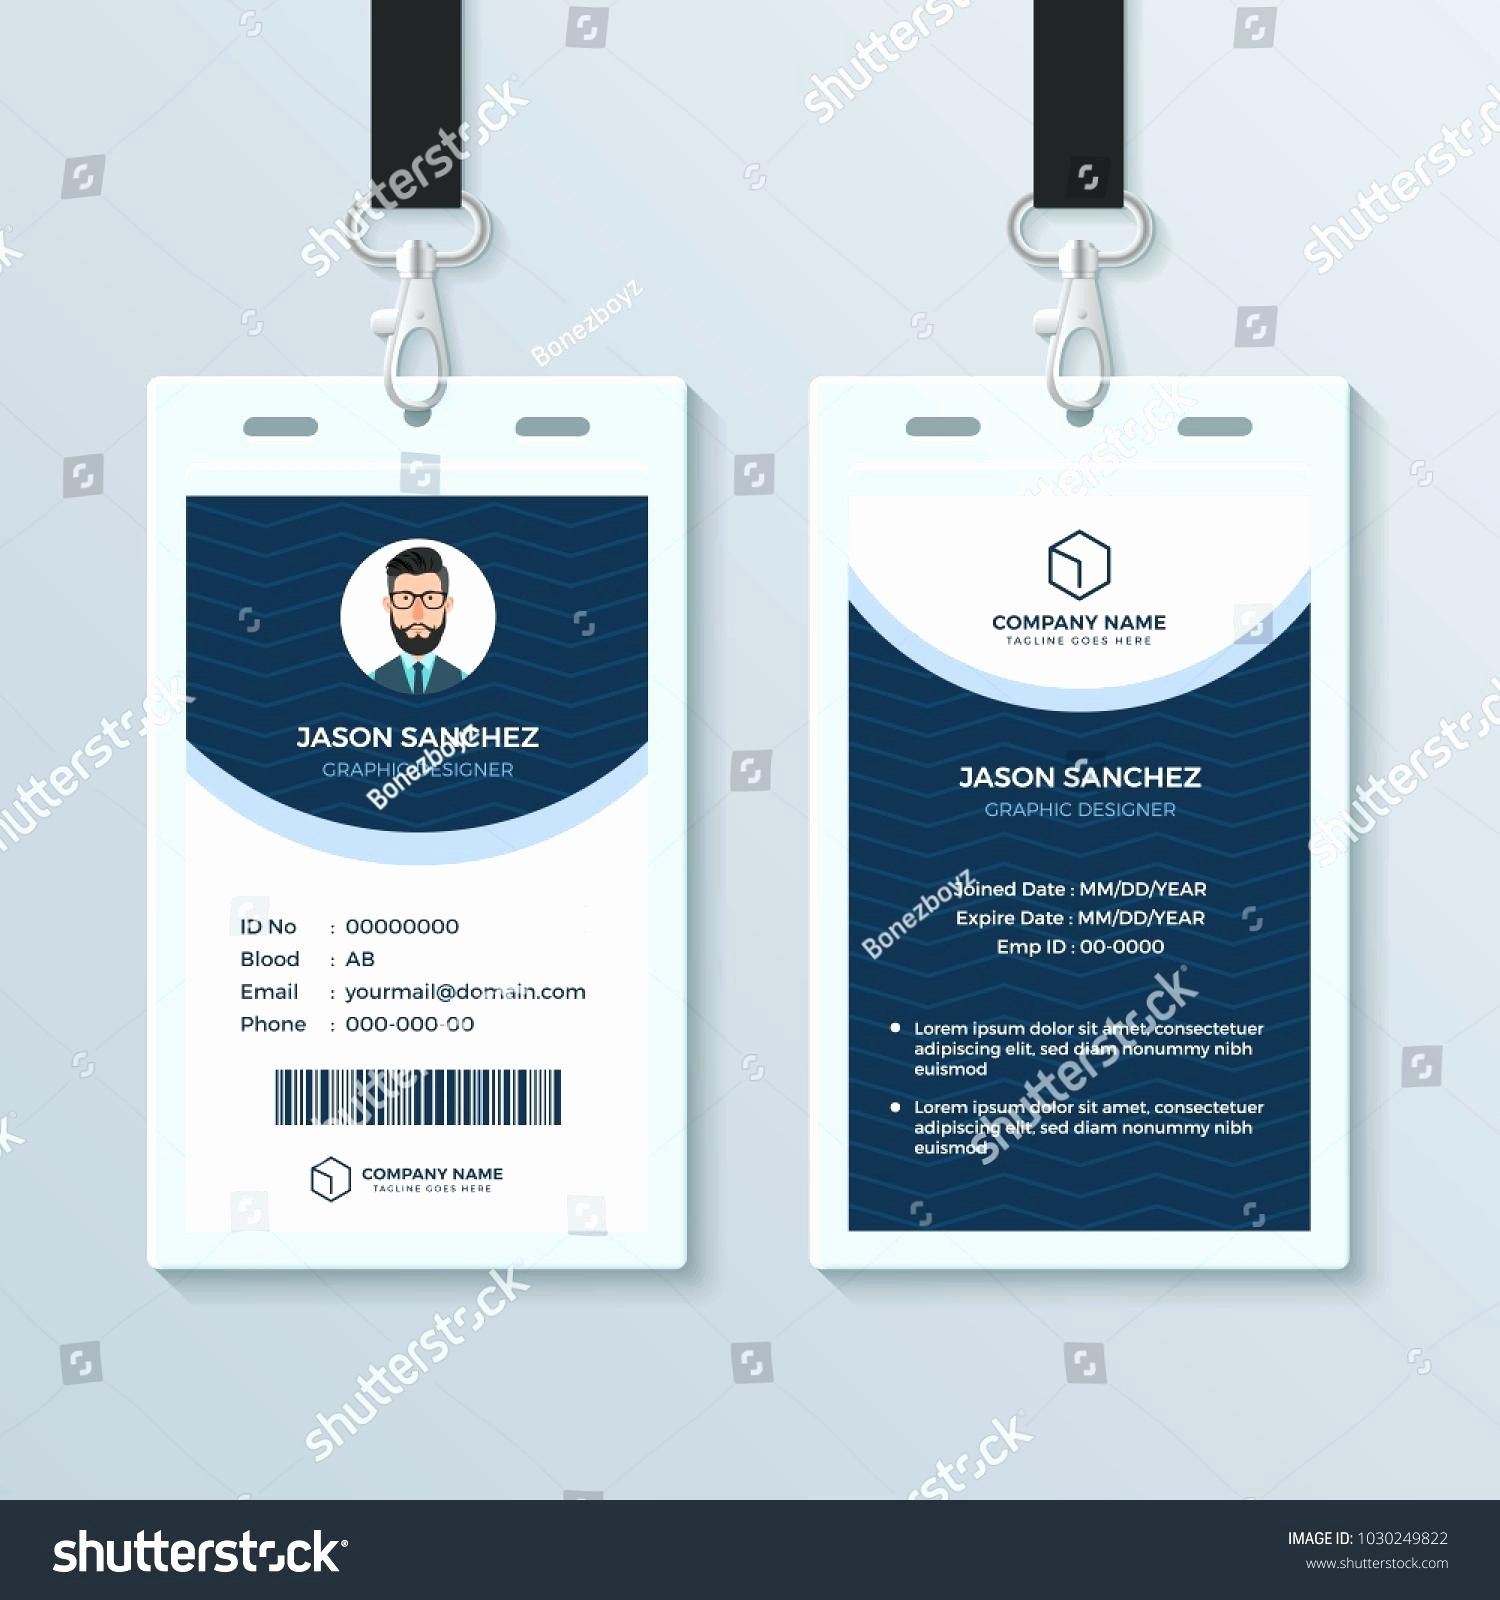 Id Badge Template Photoshop Elegant Employee Id Badge Template